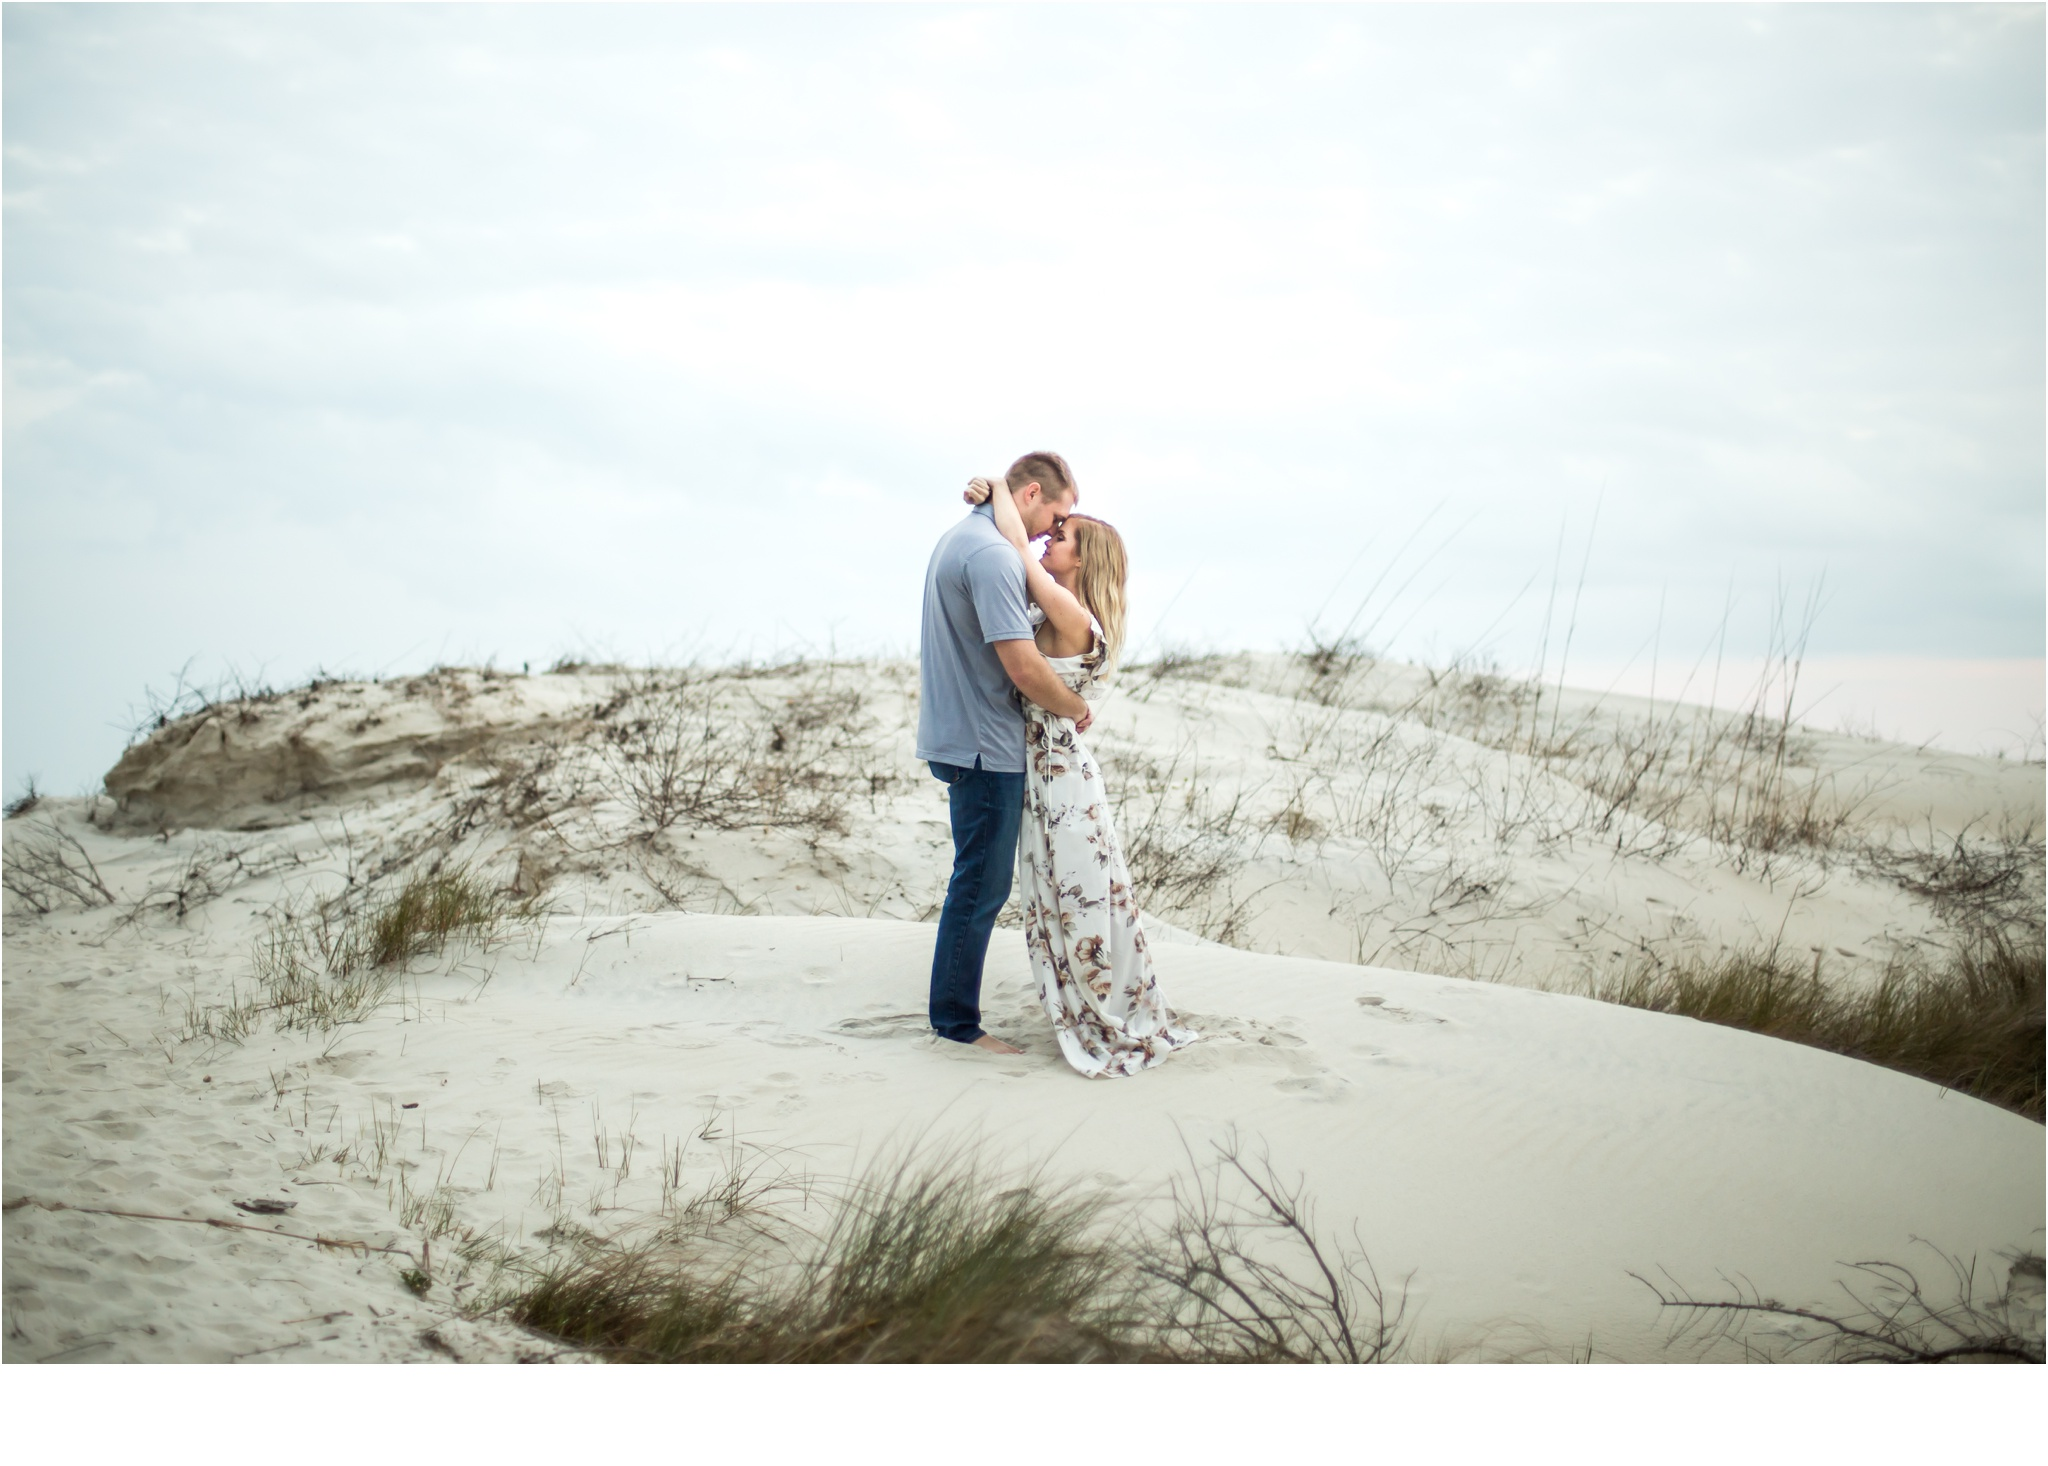 Rainey_Gregg_Photography_St._Simons_Island_Georgia_California_Wedding_Portrait_Photography_0619.jpg